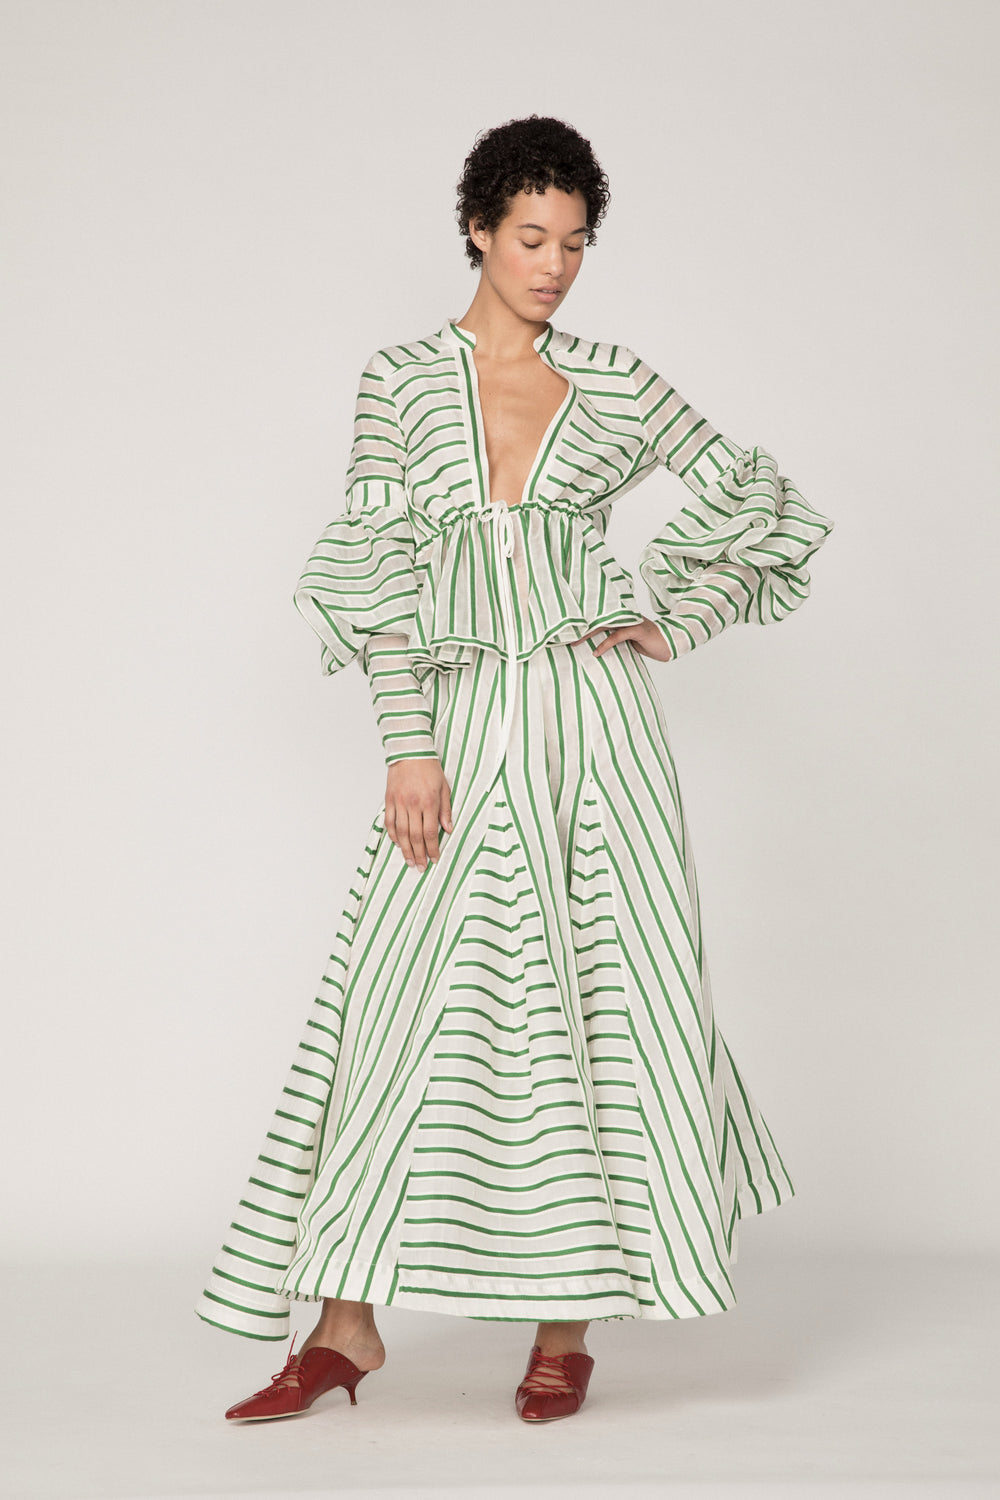 Rosie Assoulin Pre-Fall 2019 Lantern Sleeve Top. V-neck peplum top. Low neckline. Hook and eye closures. Voluminous sleeves. Green stripe. 77% Virgin Wool, 23% Silk. Sizes XS - L.